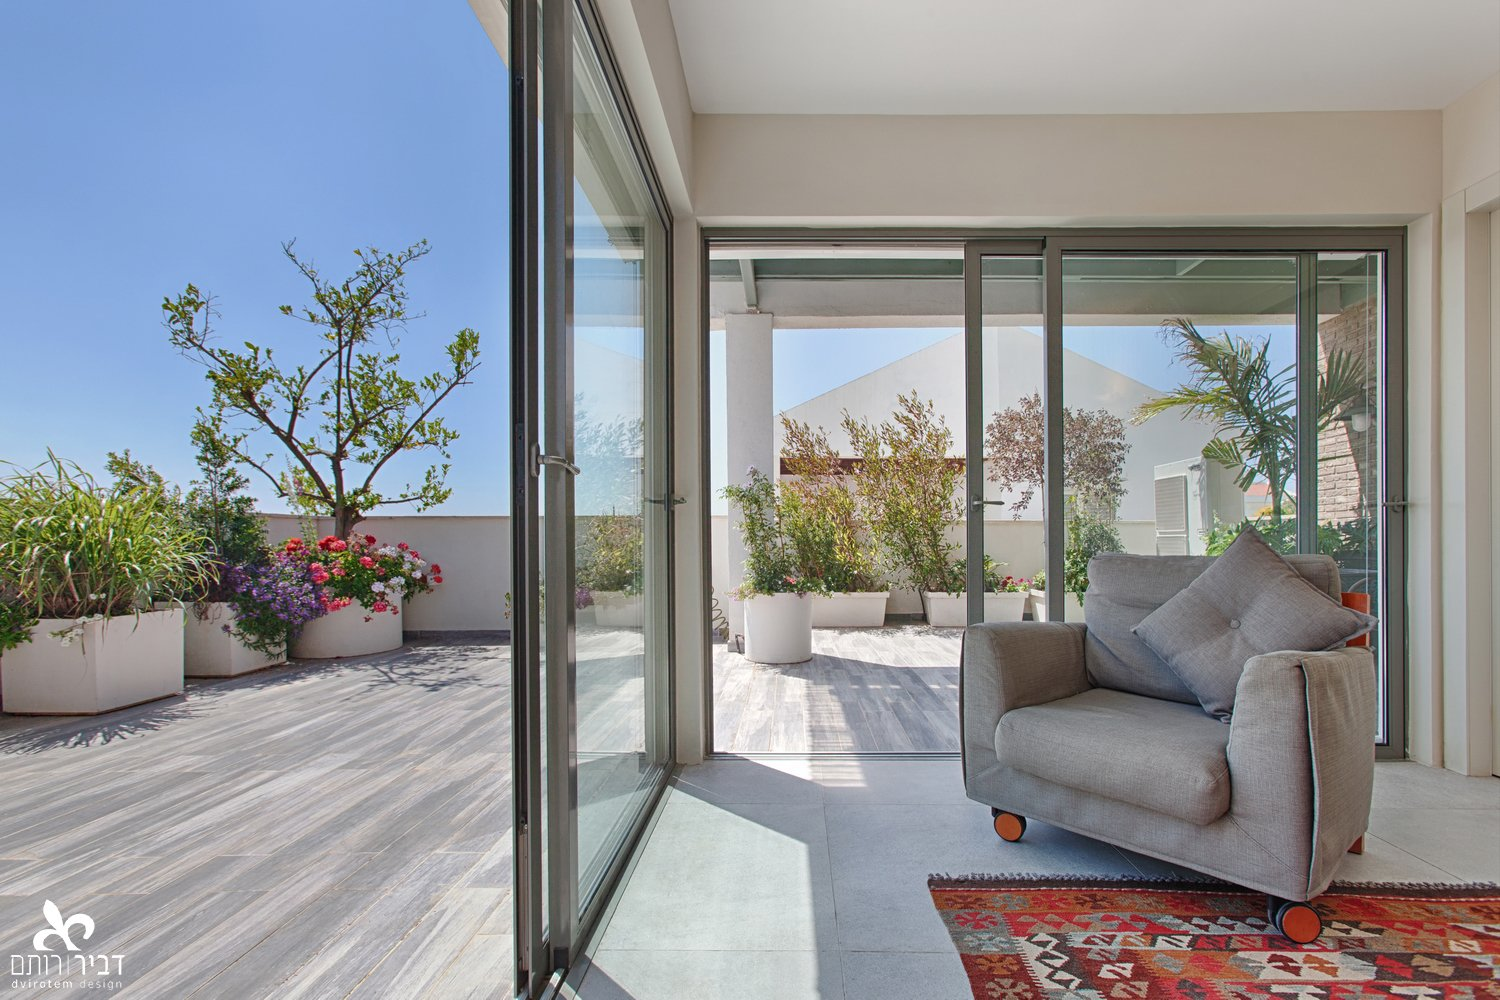 In & OUT - my vision never stop at the window  Indoor - Outdoor spaces by Liat Dvir-Rotem